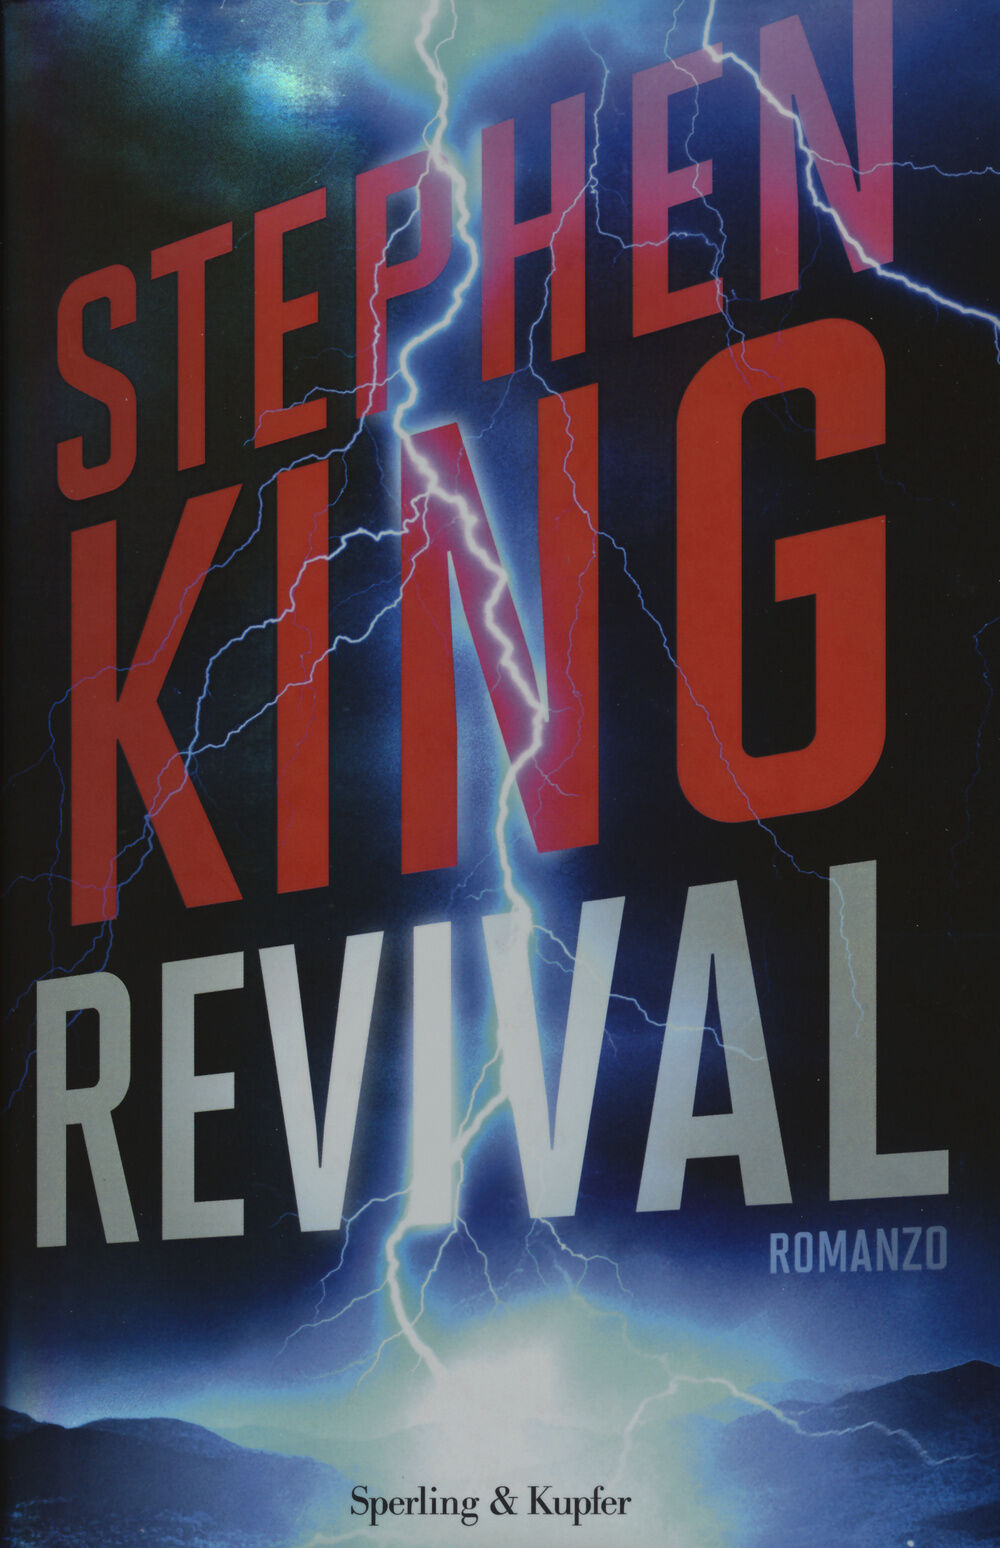 Gomorra Libro Revival - Stephen King - Libro - Sperling & Kupfer